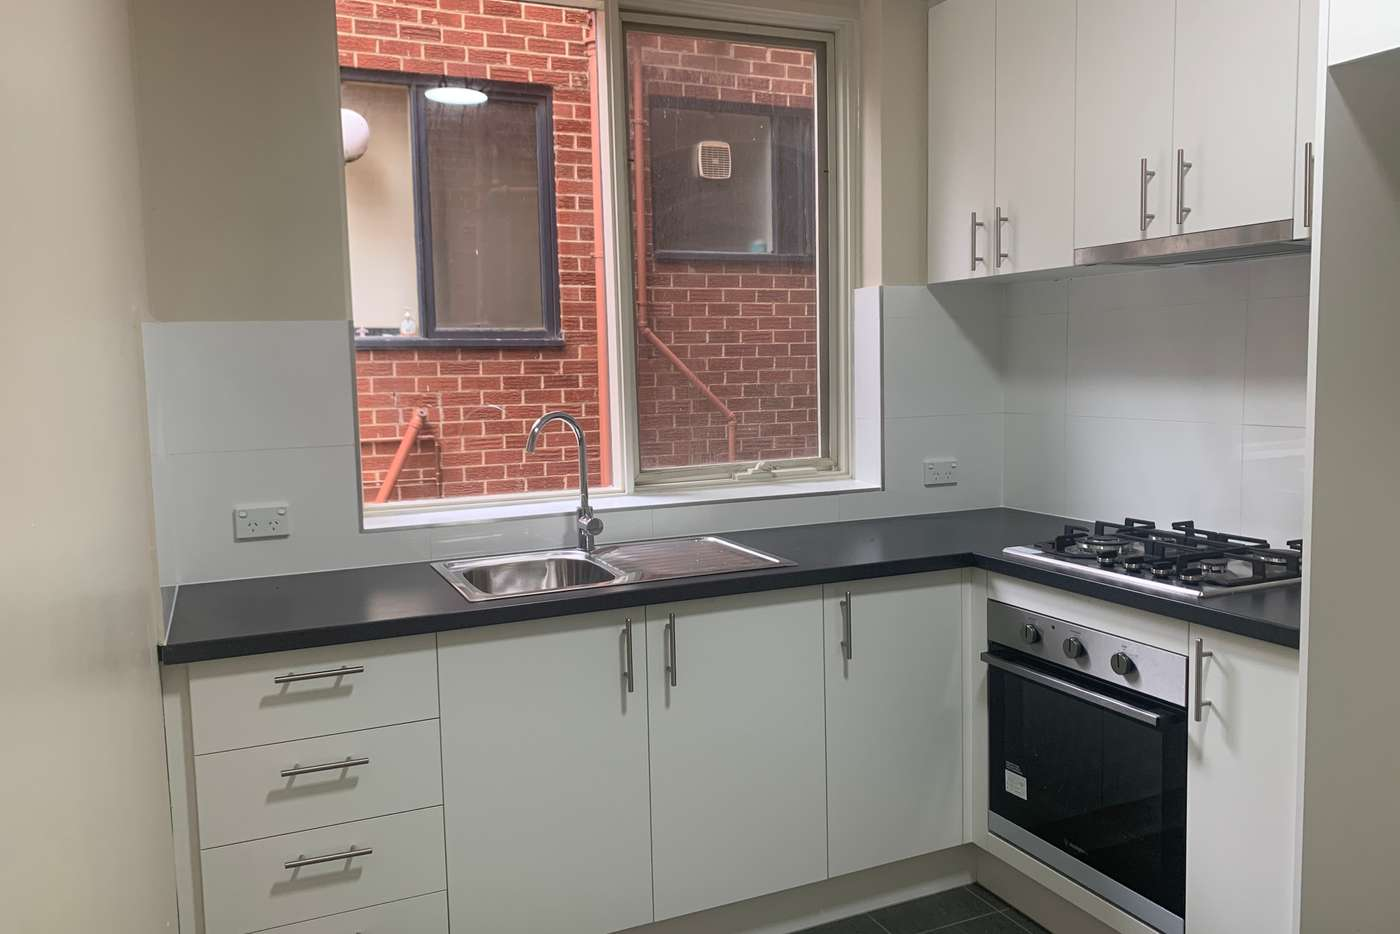 Main view of Homely apartment listing, 1/22 Brixton Rise, Glen Iris VIC 3146